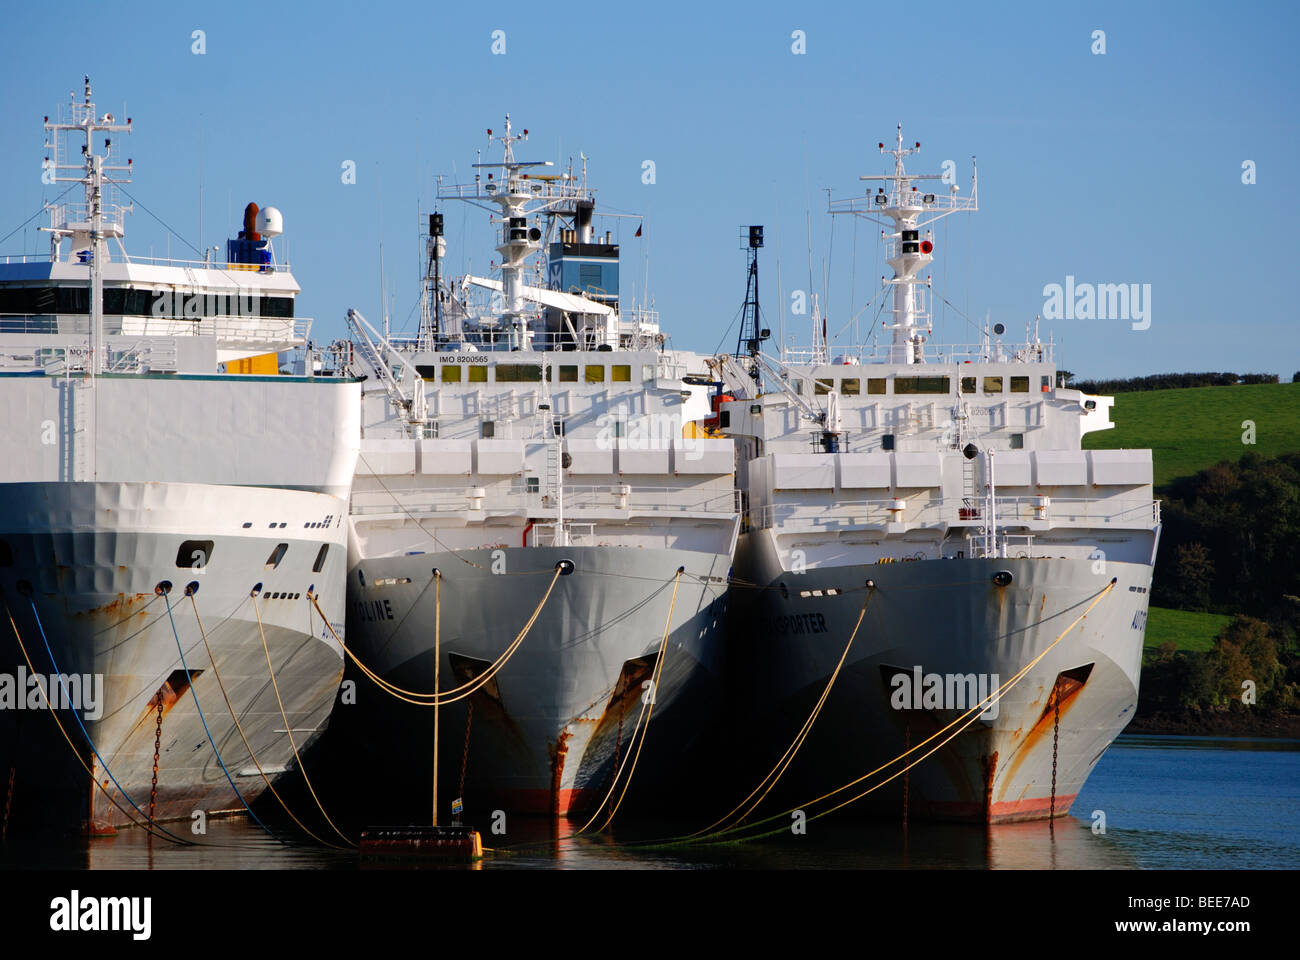 large cargo ships laid up in a deep creek on the river fal near truro in cornwall, uk - Stock Image